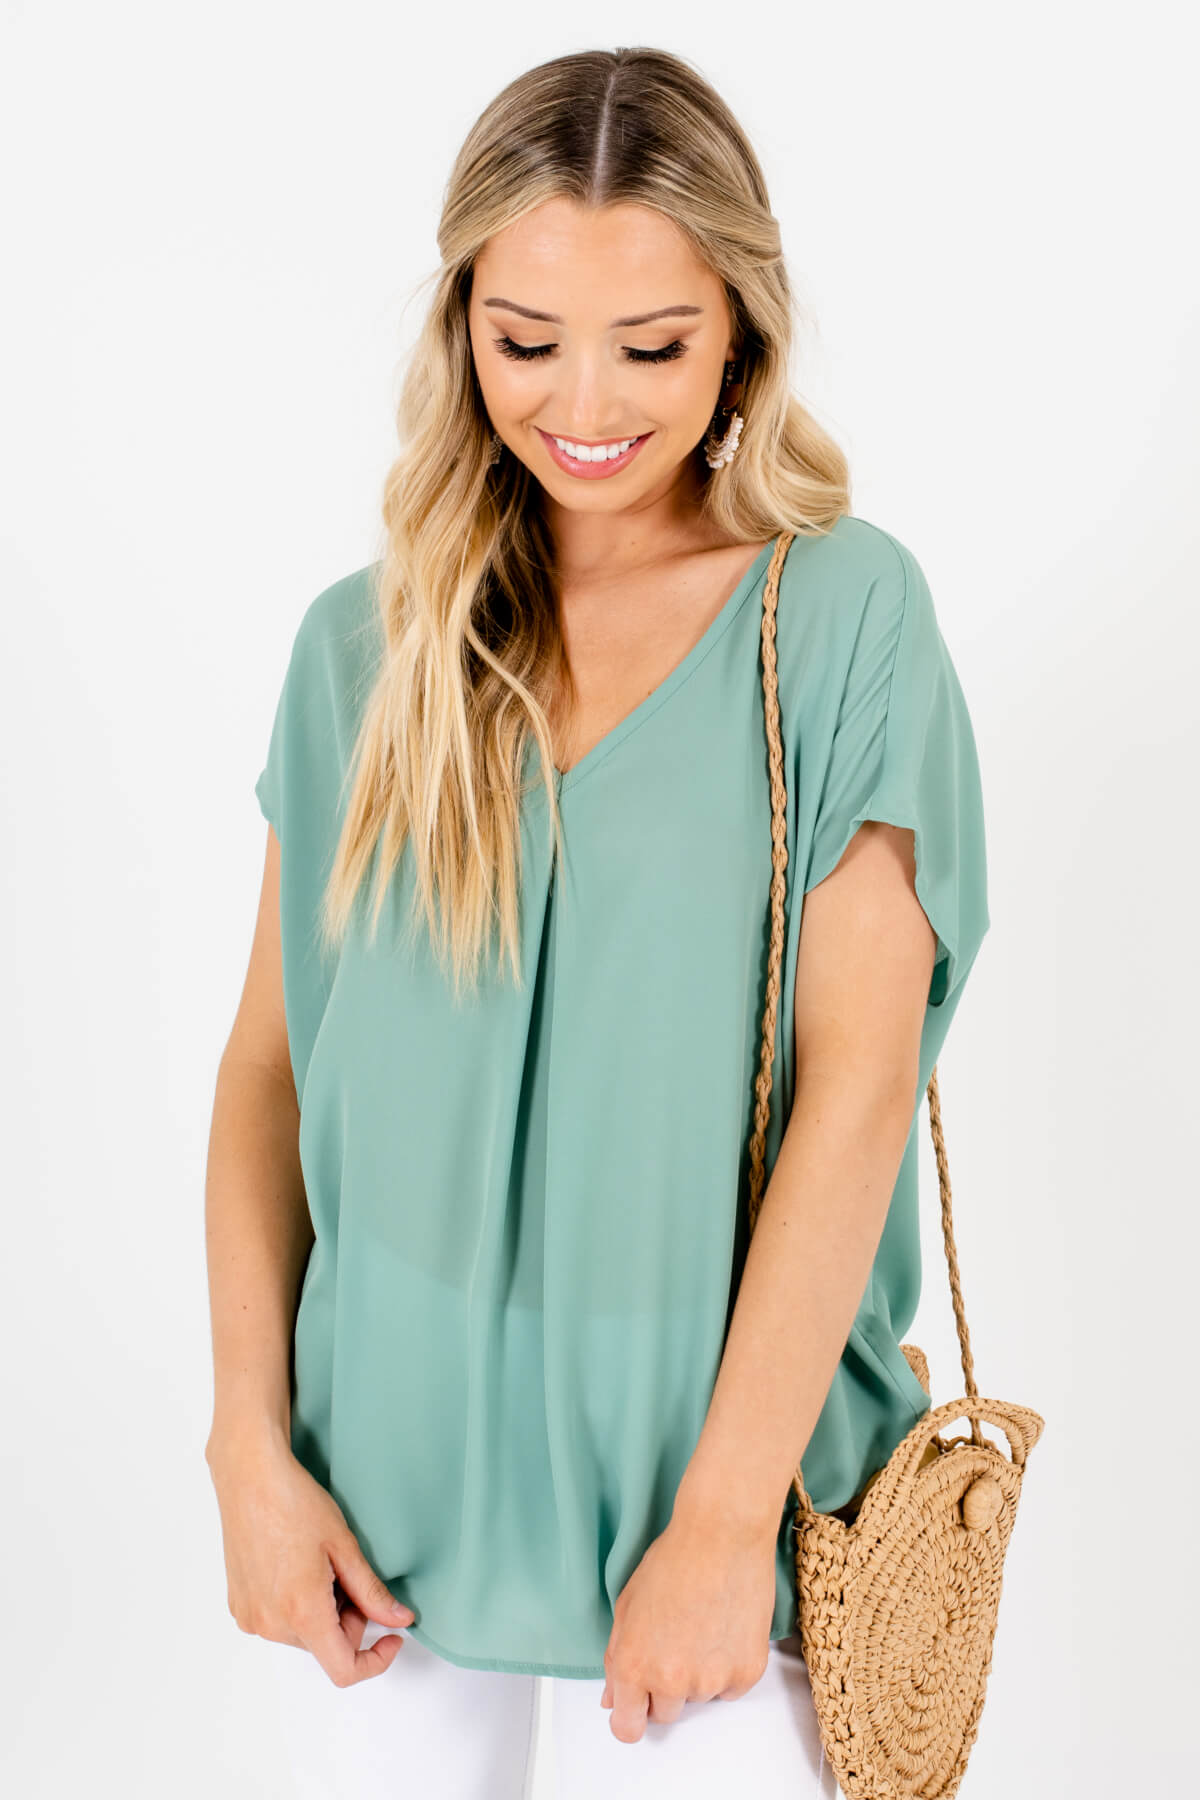 Green Lightweight High-Quality Boutique Blouses for Women